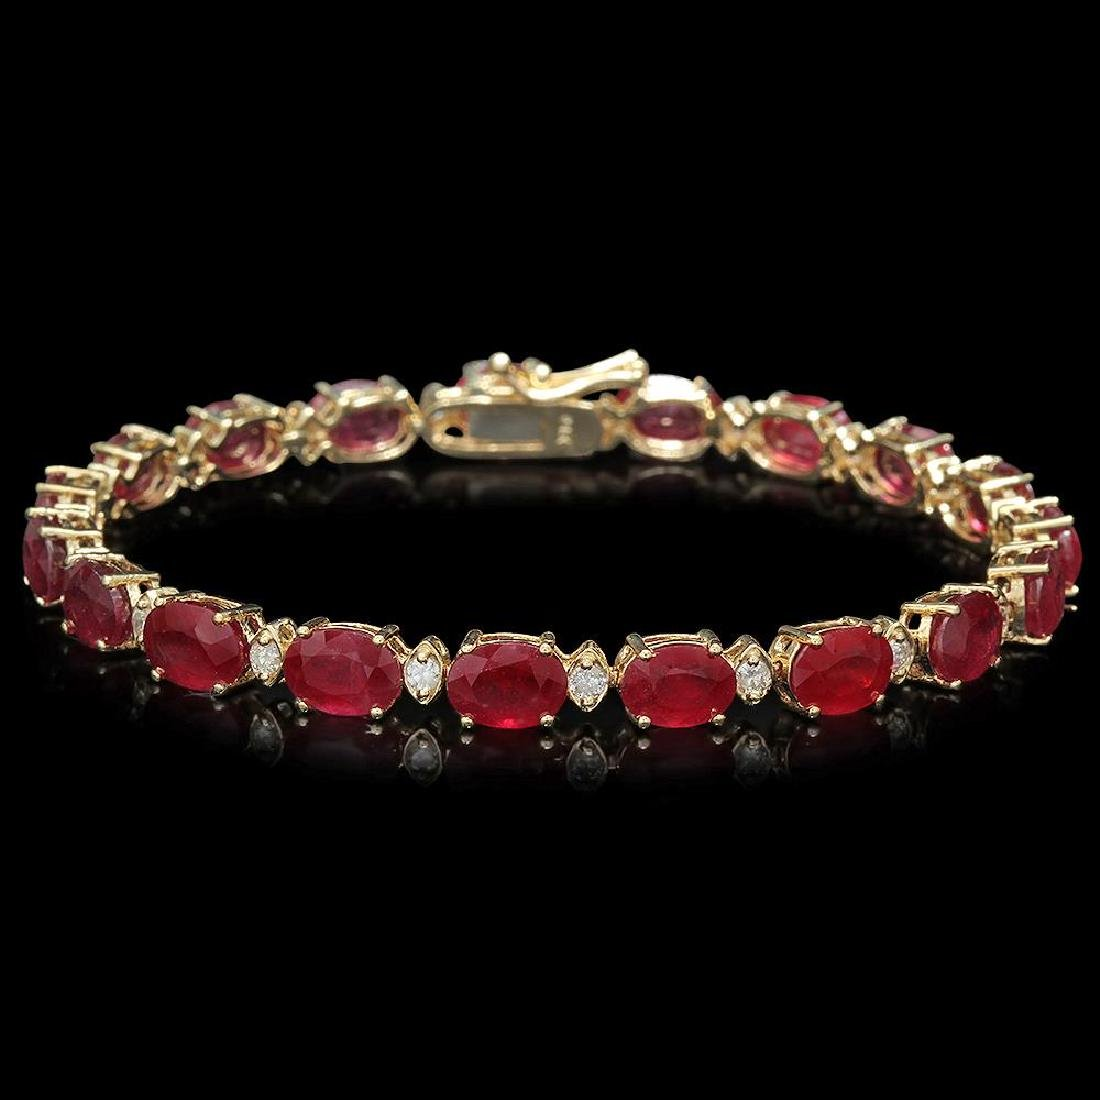 14K Gold 21.32ct Ruby 0.70ct Diamond Bracelet